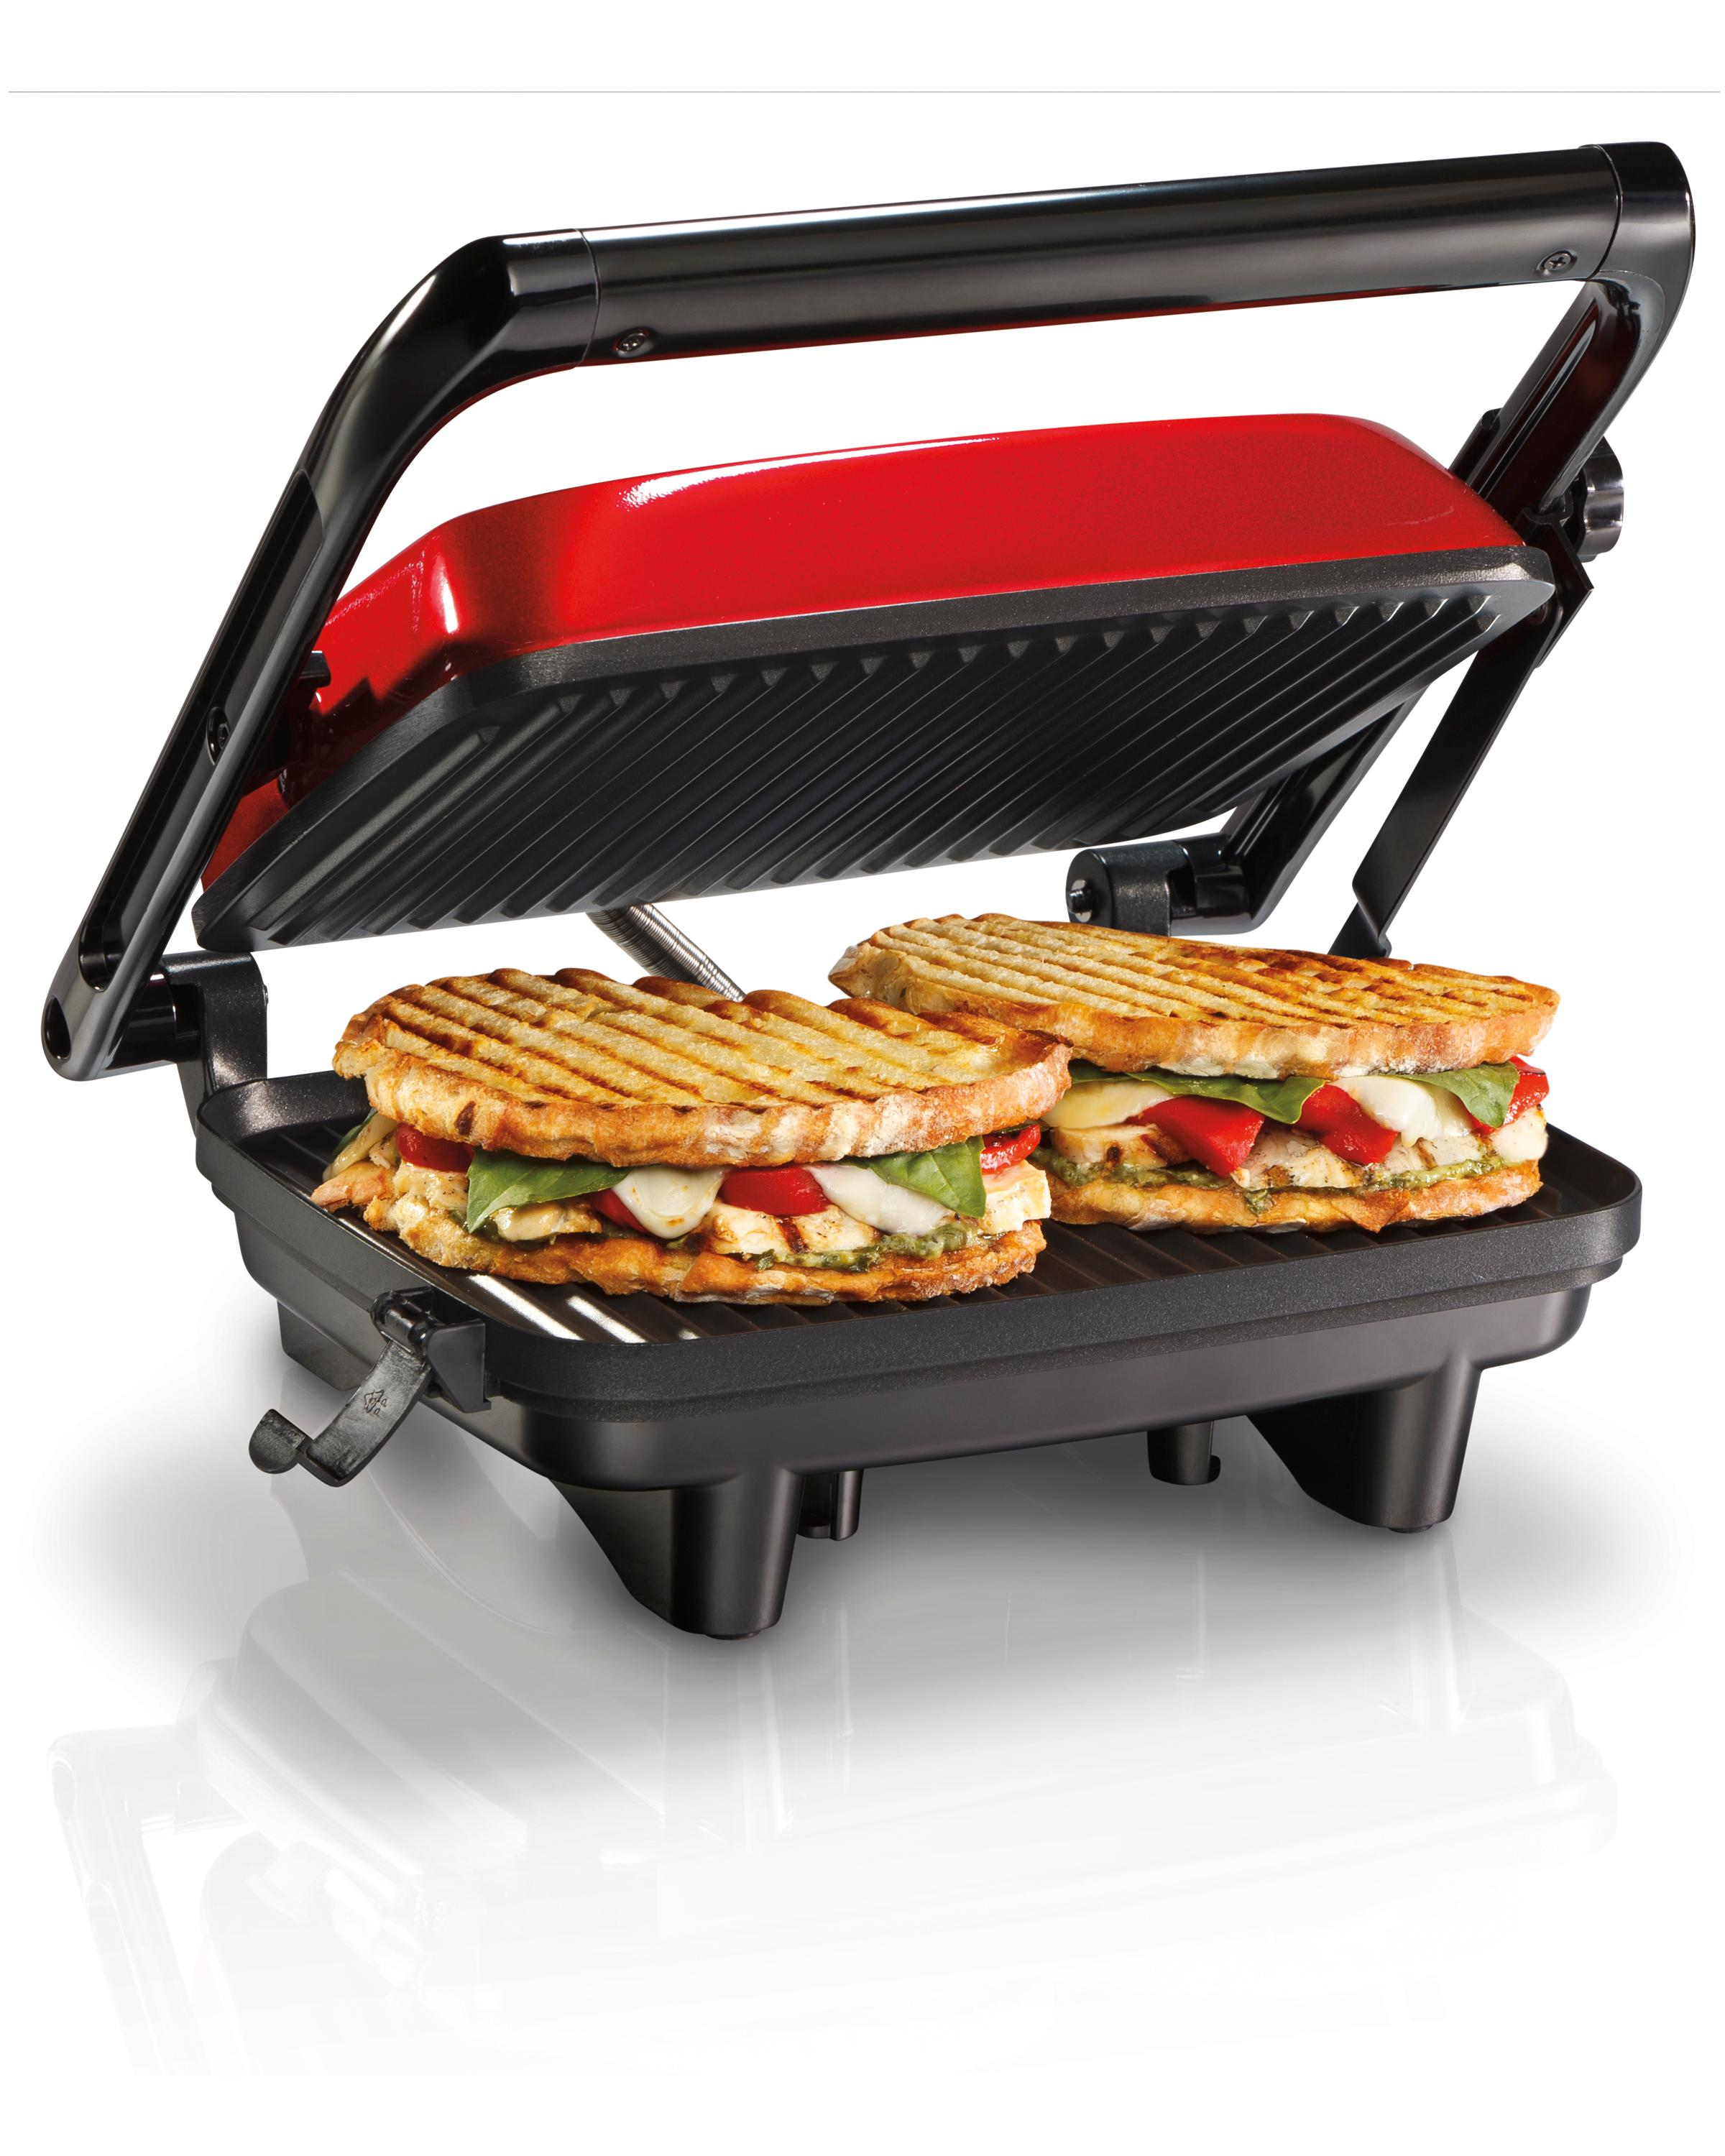 Amazon.com: Hamilton Beach 25462Z Panini Press Gourmet